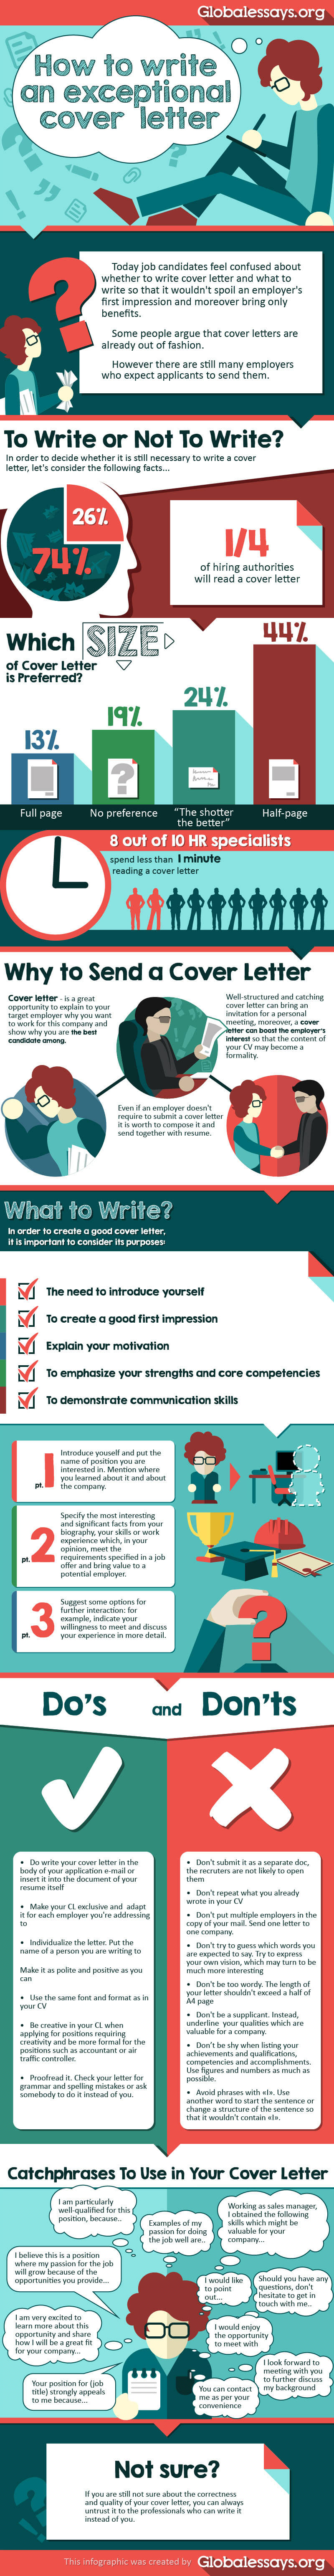 How-to-write-an-exceptional-cover-letter-infographic-plaza